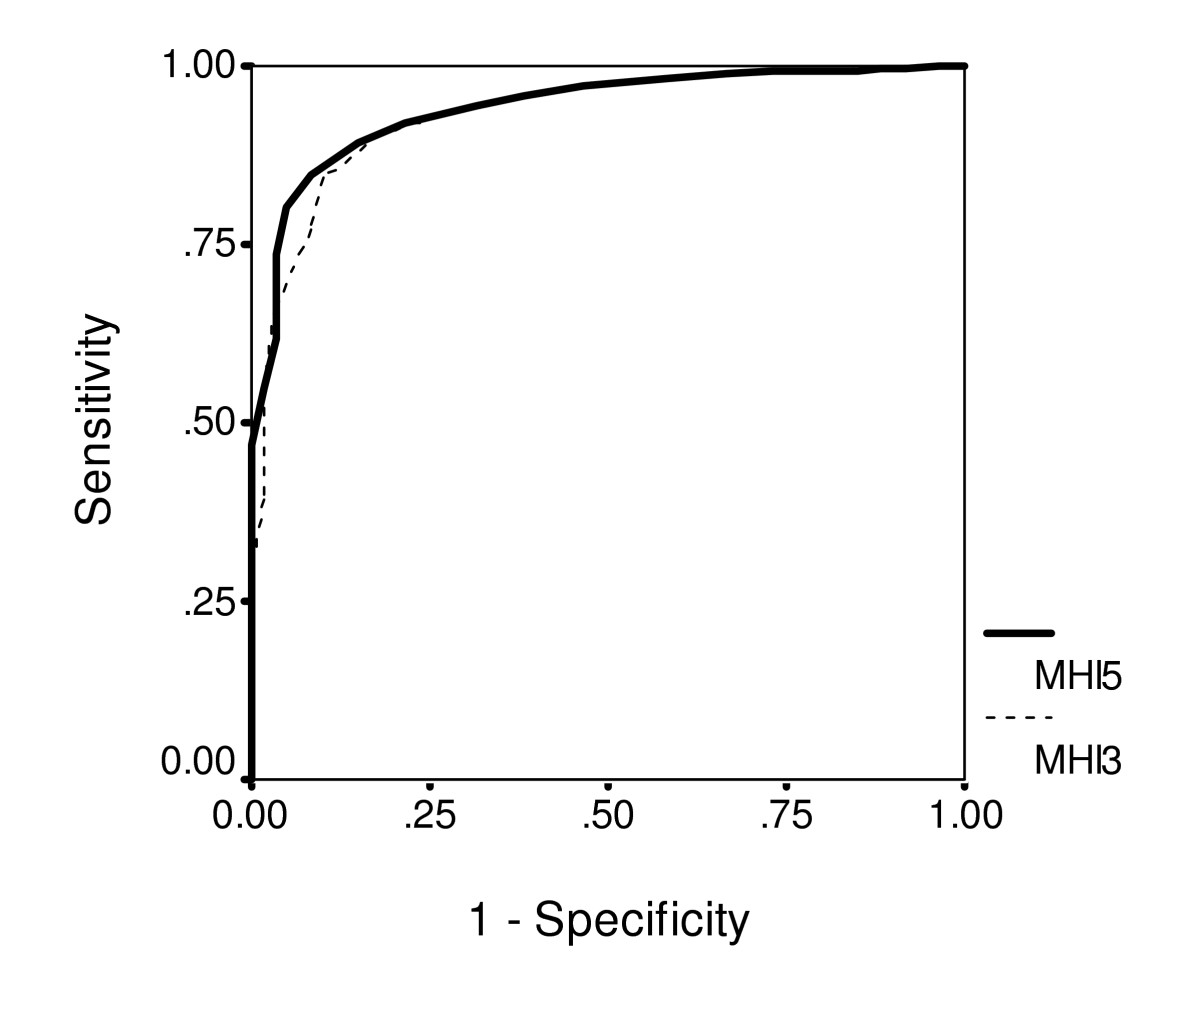 http://static-content.springer.com/image/art%3A10.1186%2F1477-7525-3-48/MediaObjects/12955_2005_Article_199_Fig1_HTML.jpg